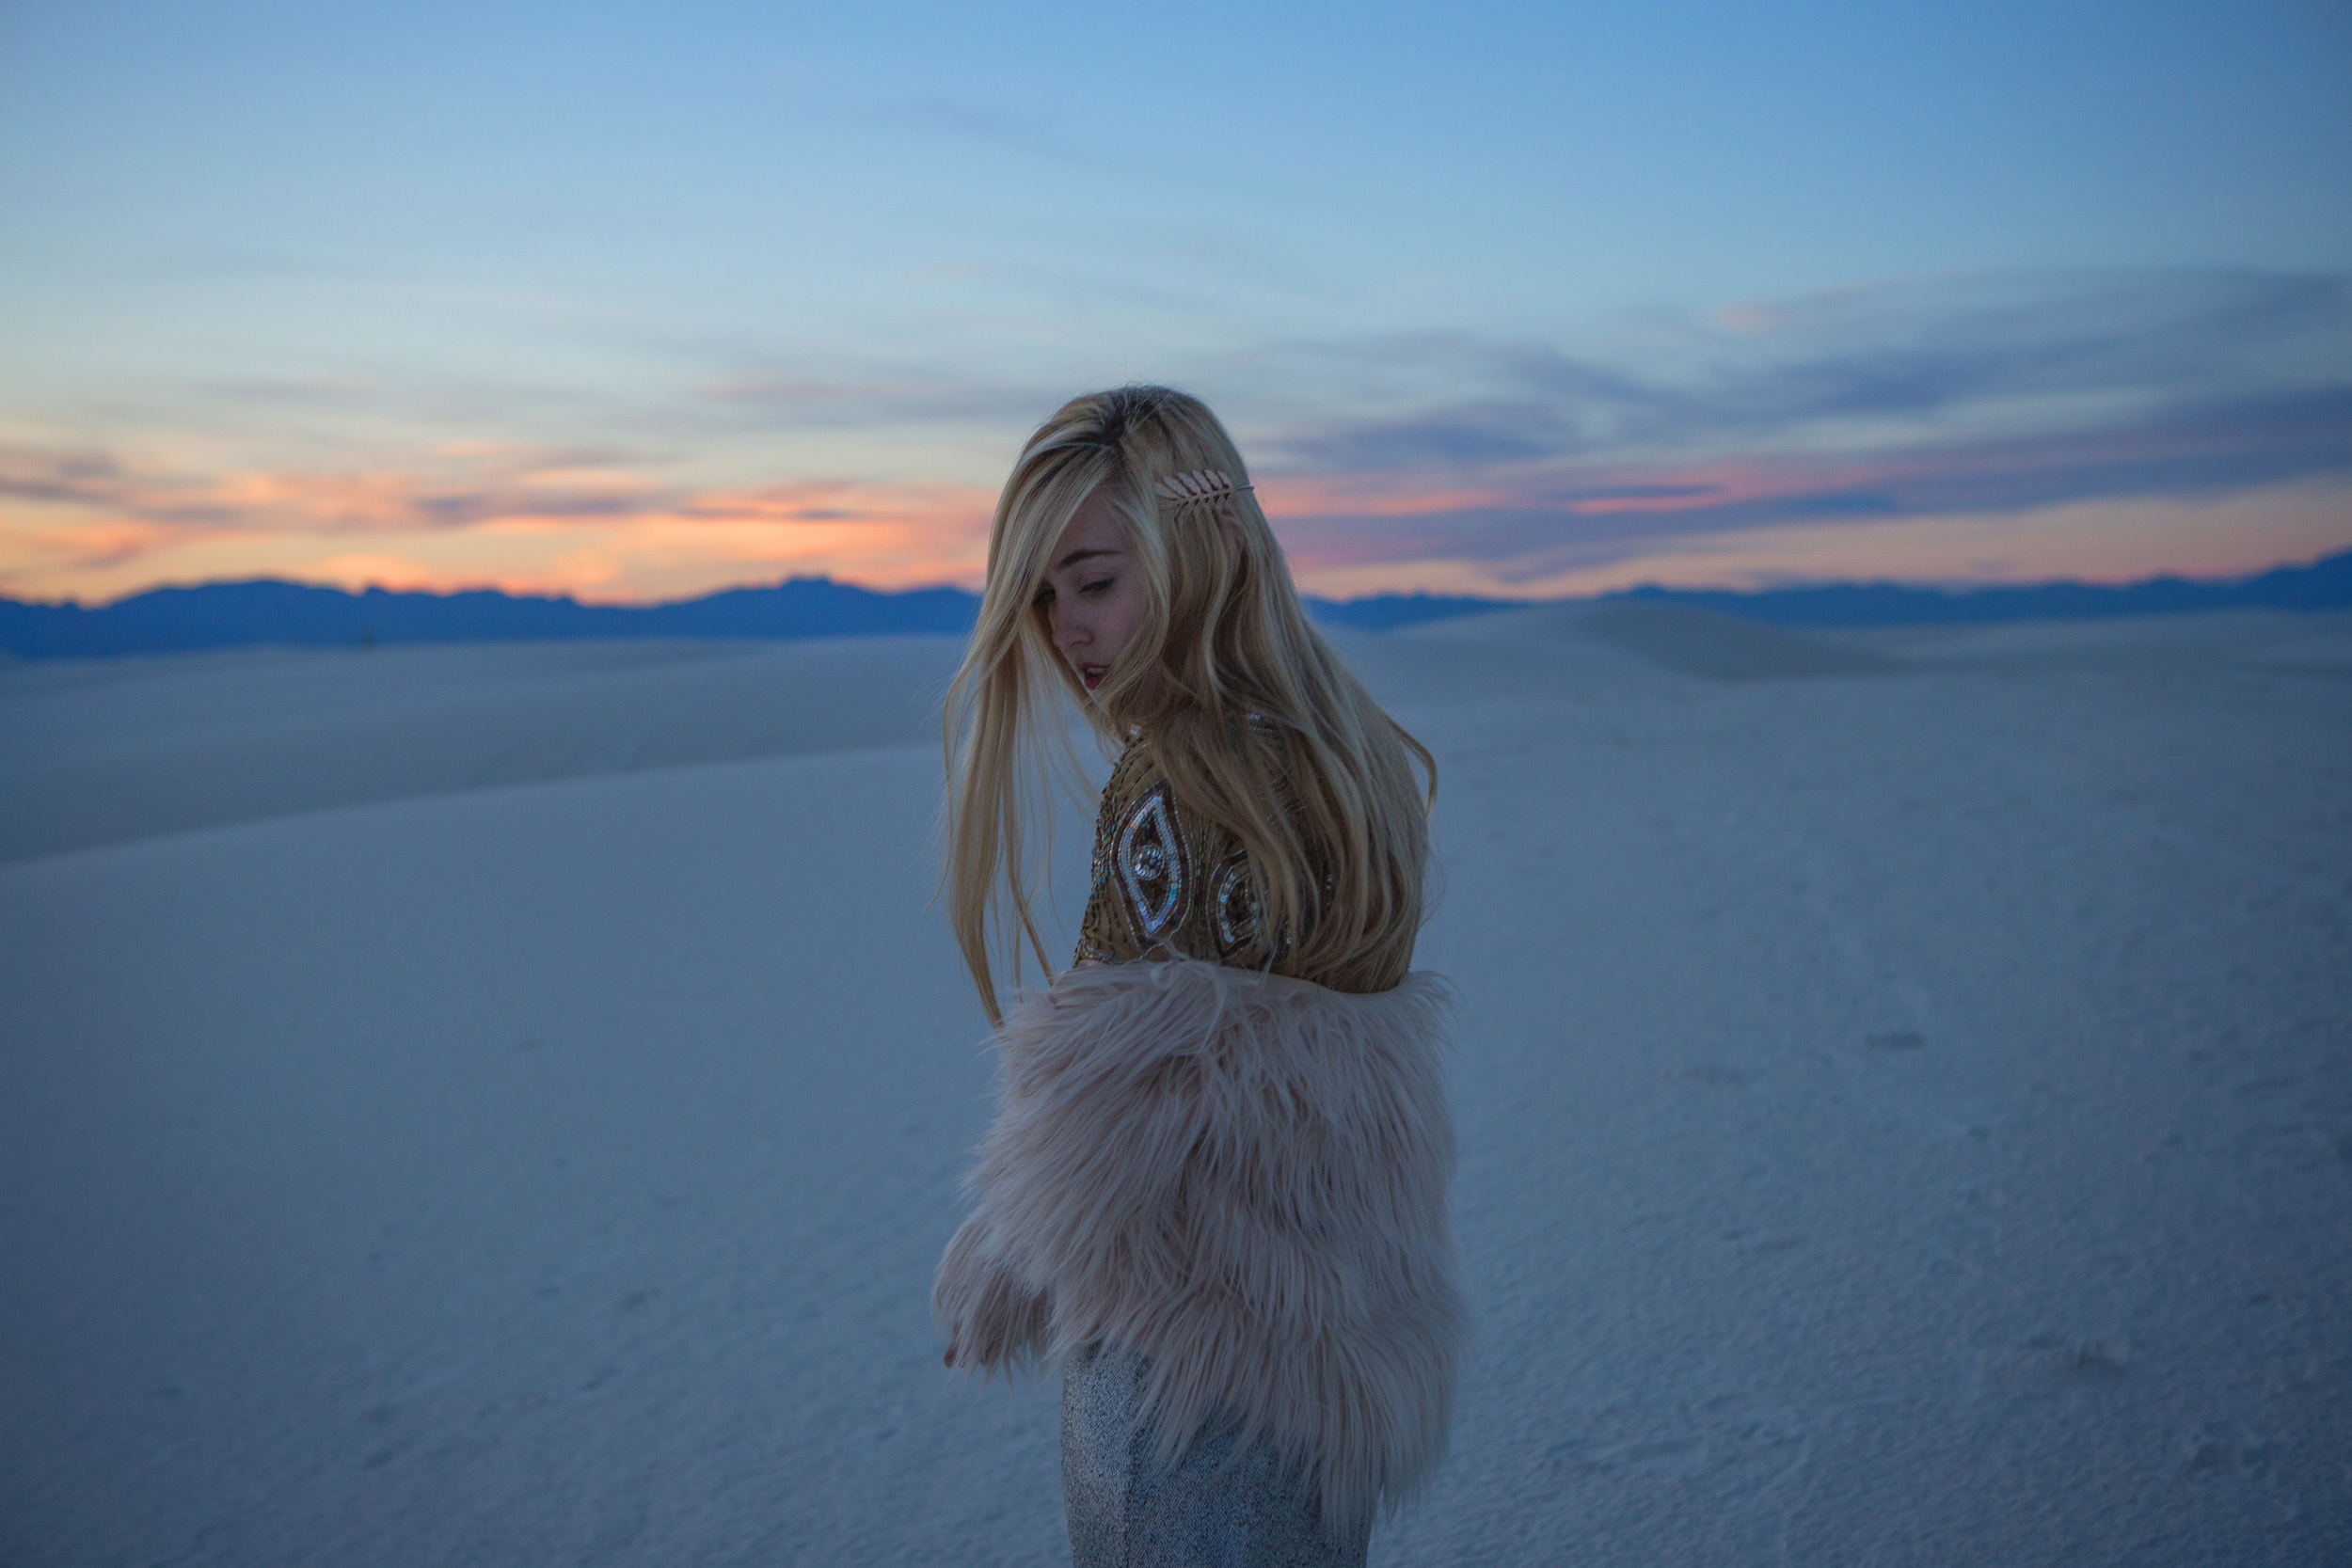 AstroBandit_JordanRose_WhiteSands_Sunset_Sequins_Dancing_Dancer_Fashion_5.jpg